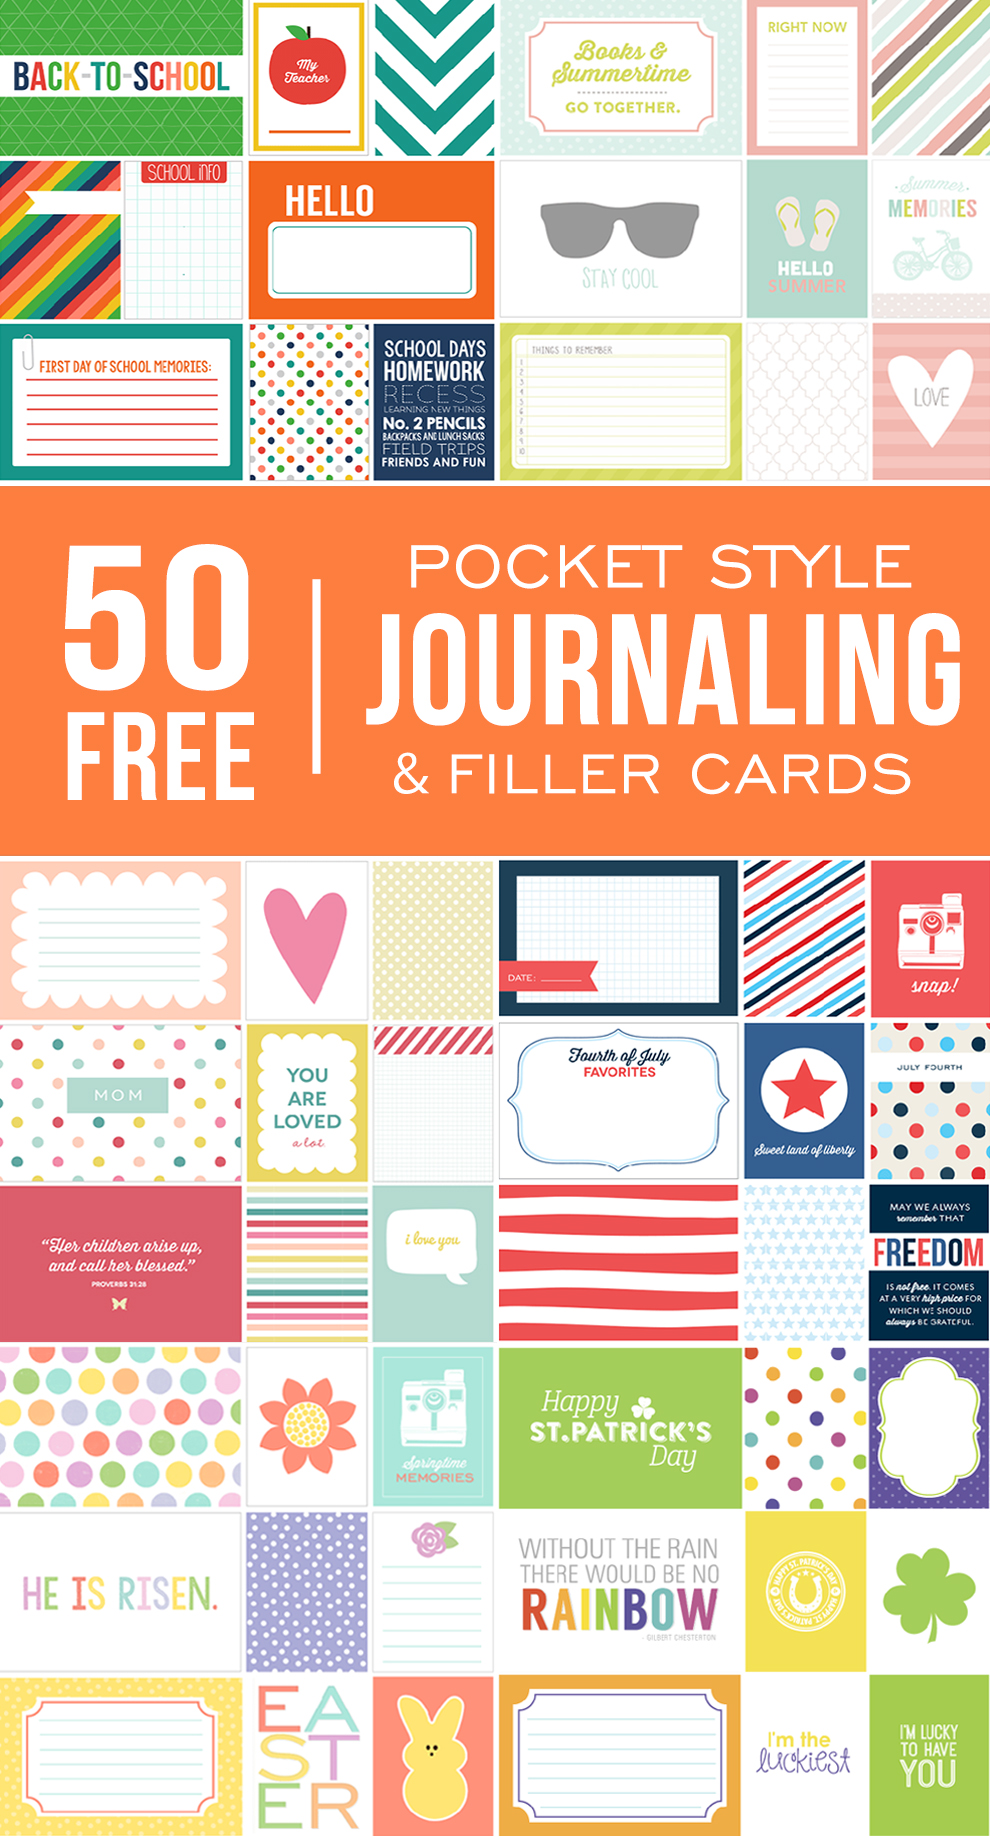 graphic about Free Printable Journal Cards known as Greatest Roundup of No cost Journaling + Filler Card Printables